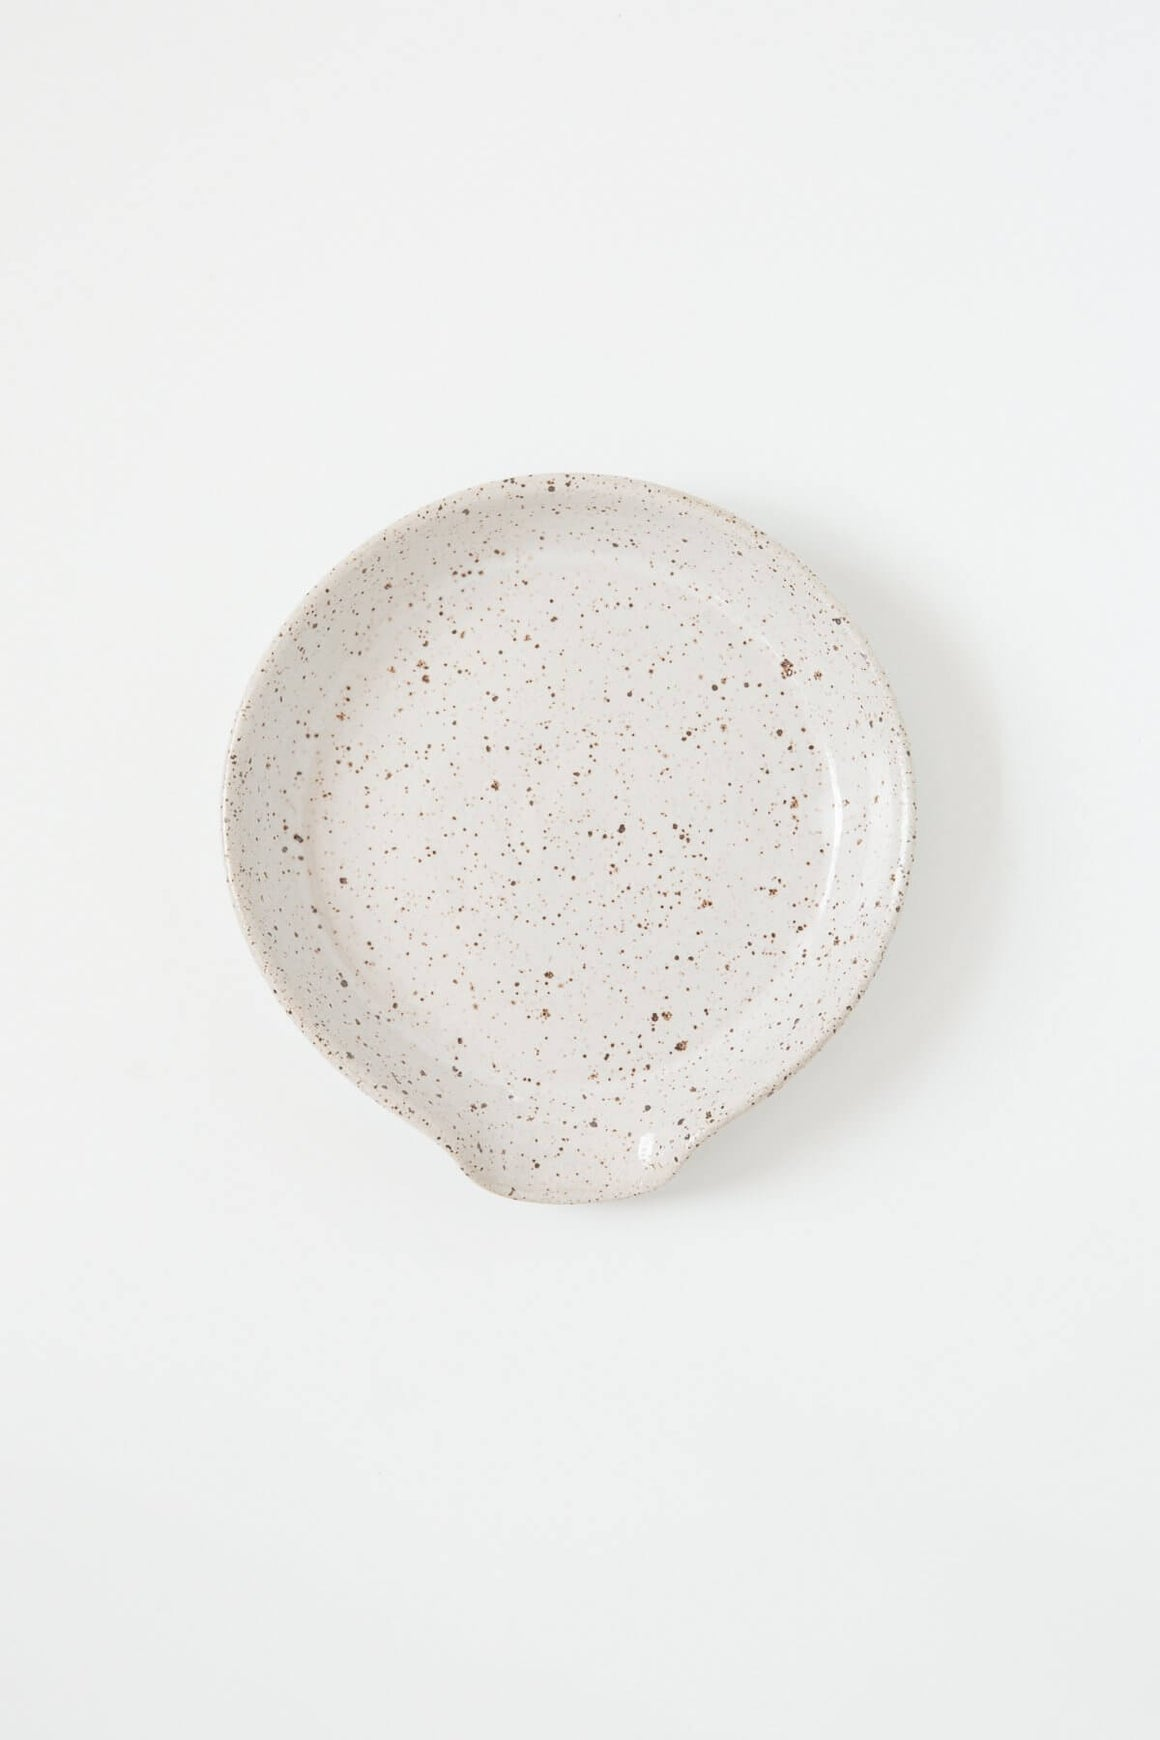 Speckled Spoon Rest